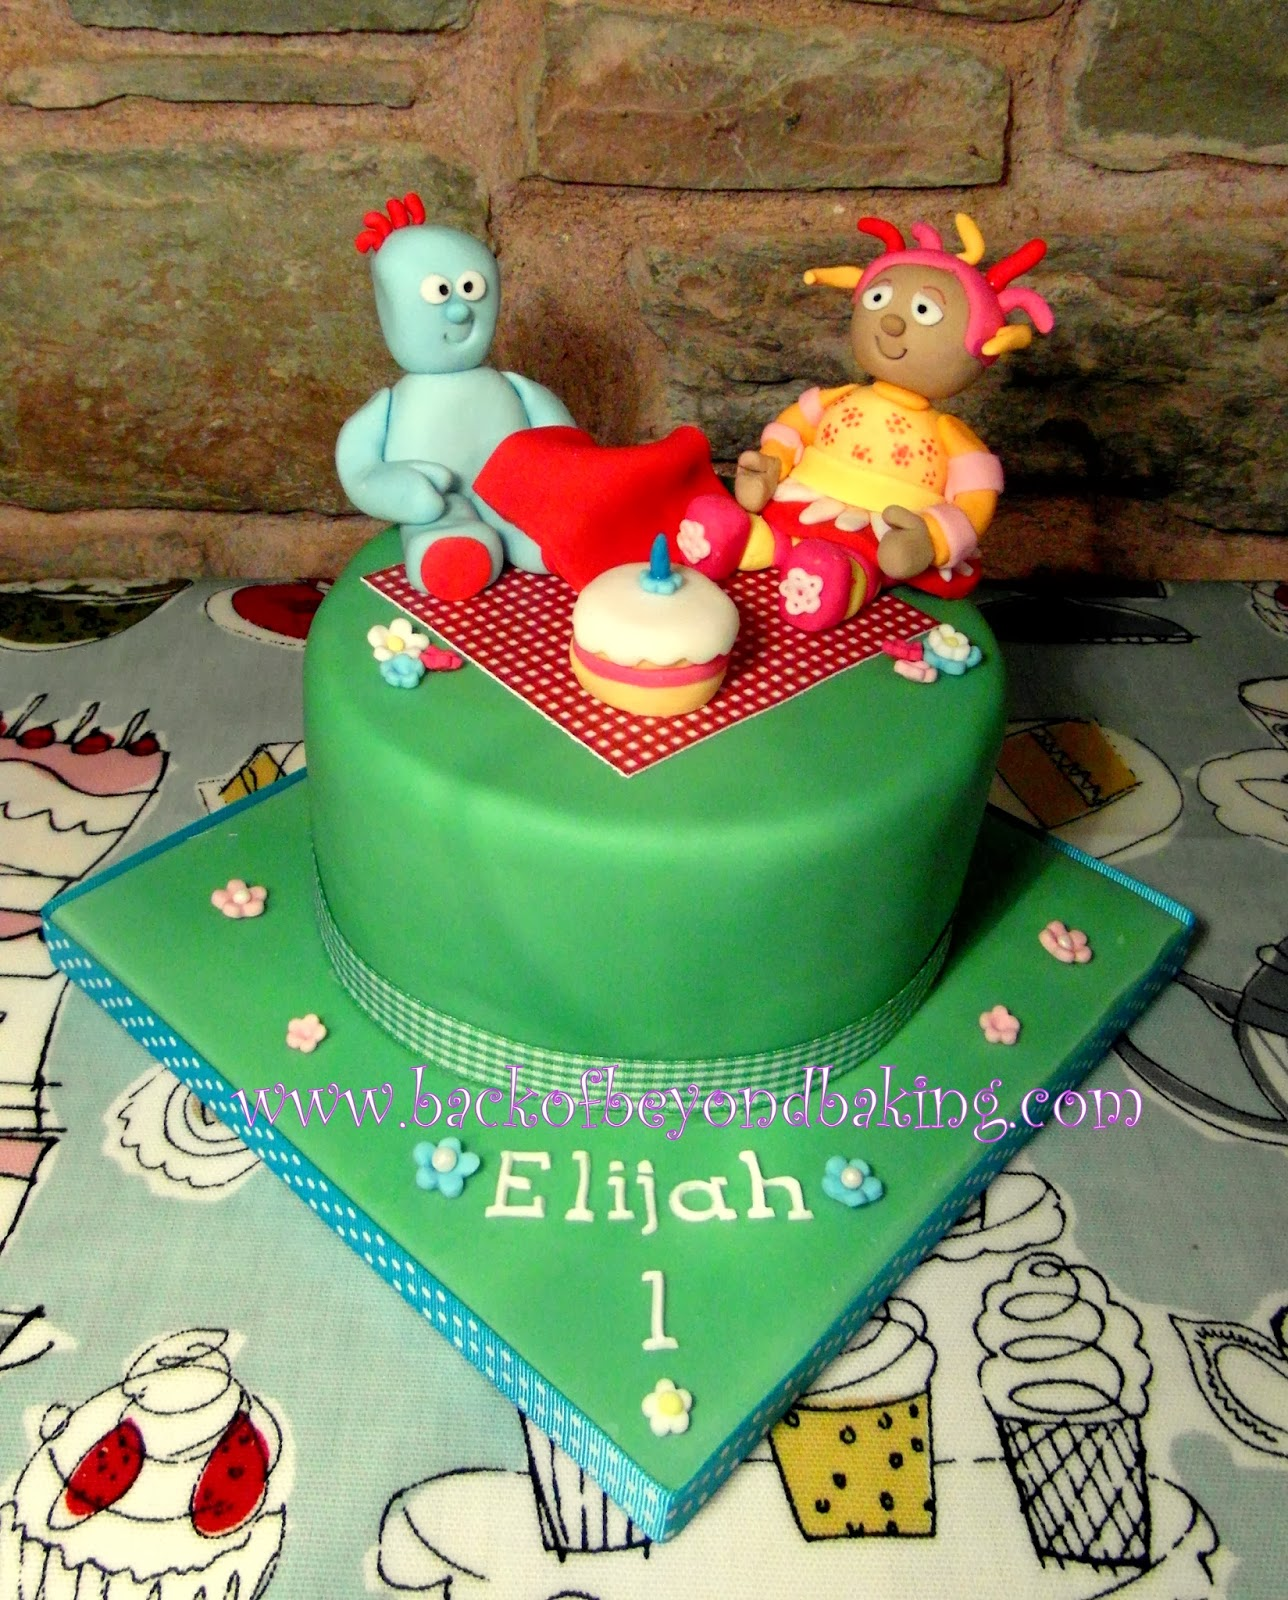 upsadaisy and iggle piggle cake